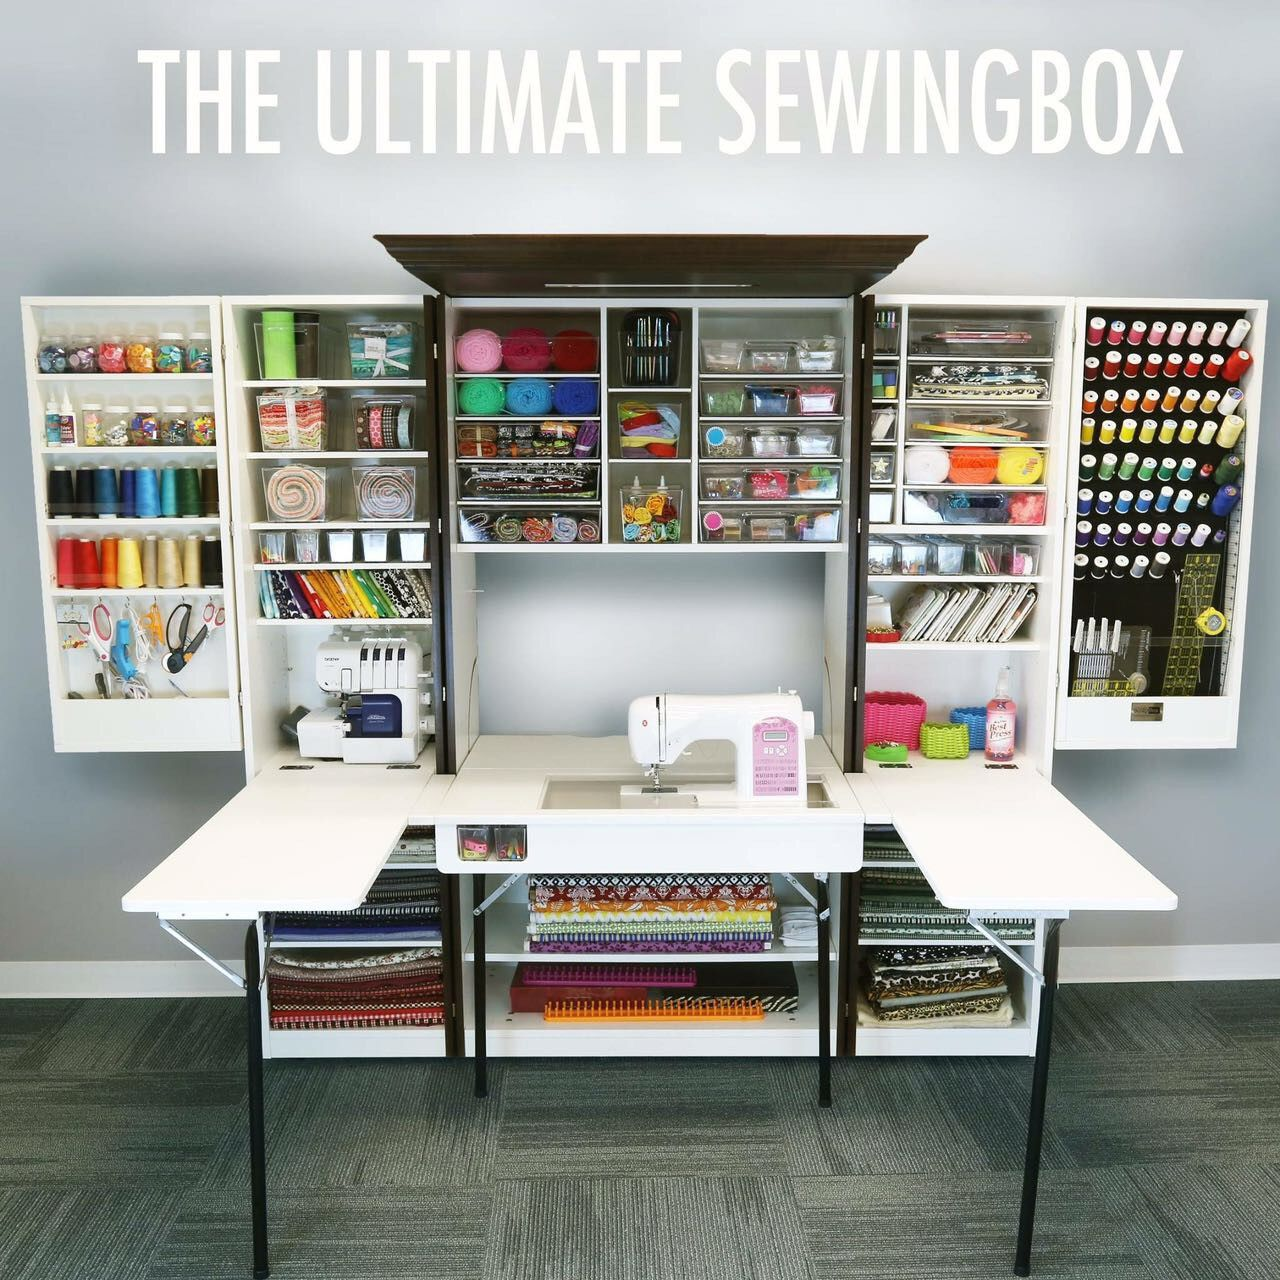 sew unbelievable die ultimate sewingbox kommt nach europa europa n hzimmer und n hecke. Black Bedroom Furniture Sets. Home Design Ideas